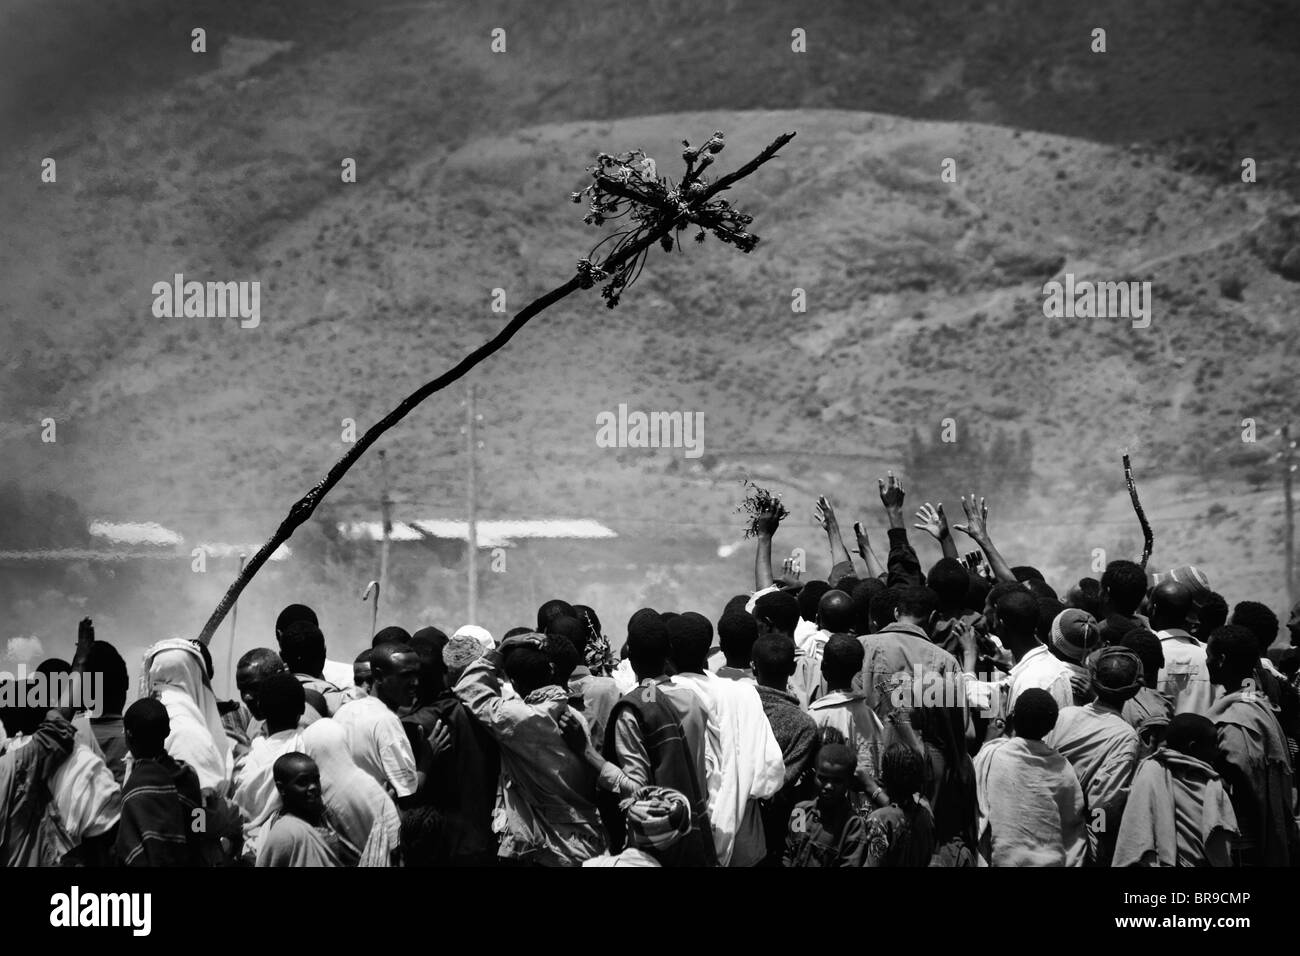 People trying to touch a cross that falls from a bonfire during a Meskel party Sekota Ethiopia. - Stock Image